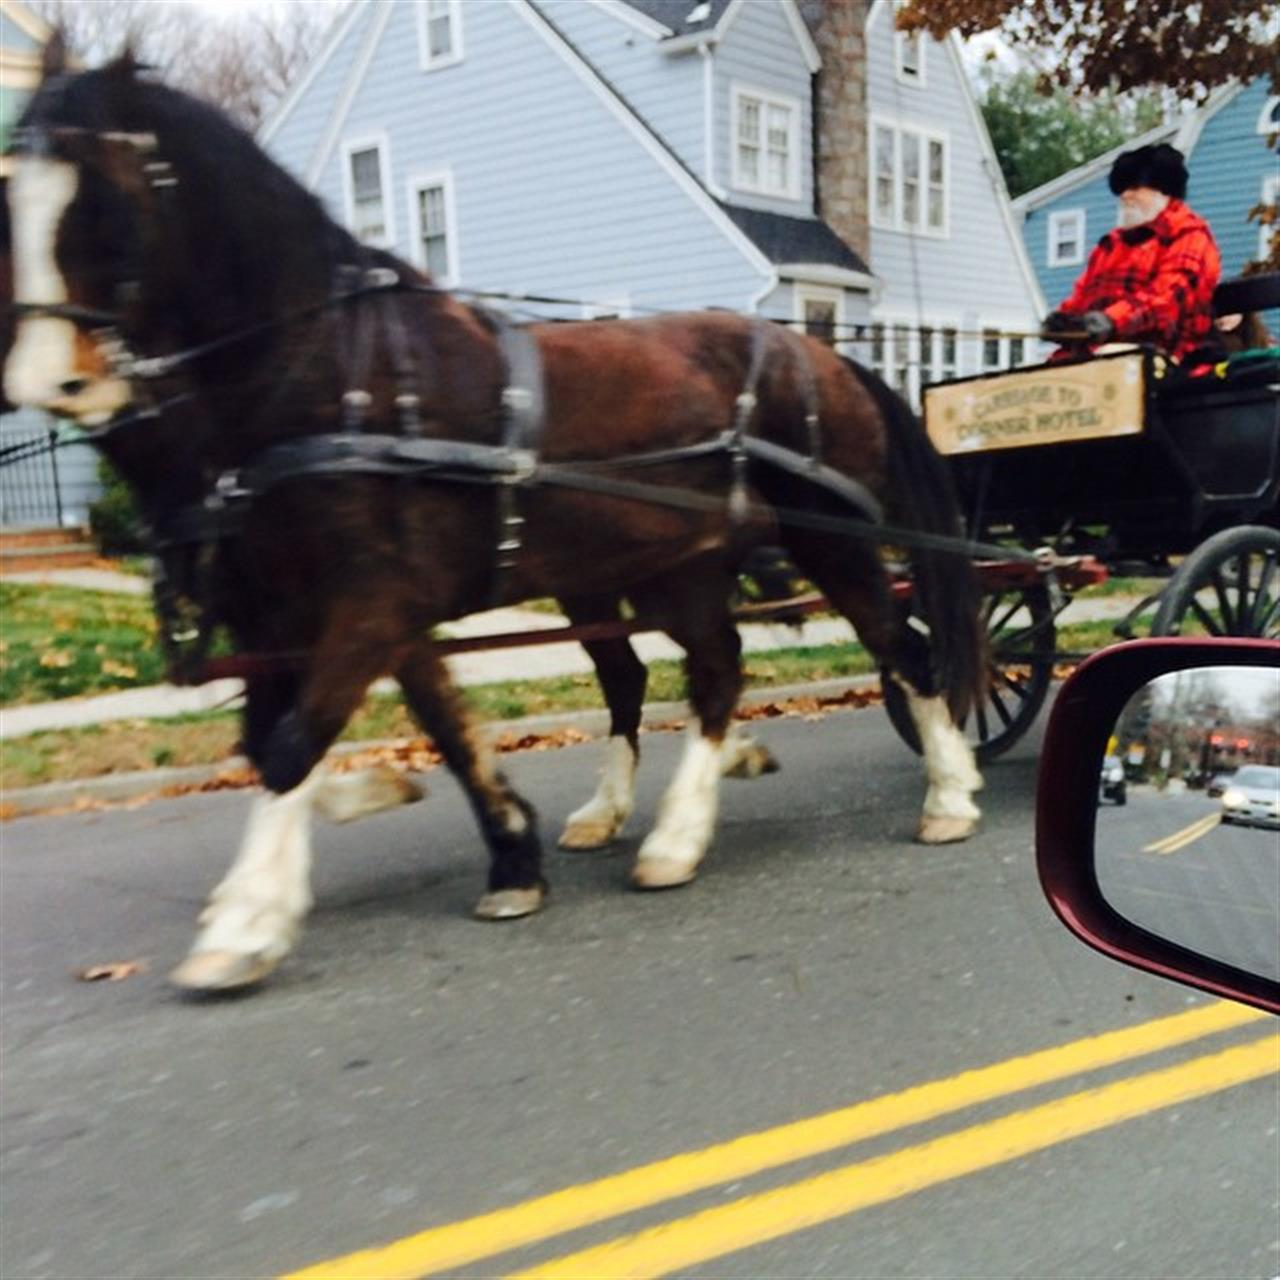 Don't see this in Fairfield very often. #fairfieldct #Fairfield #horses #LeadingRELocal